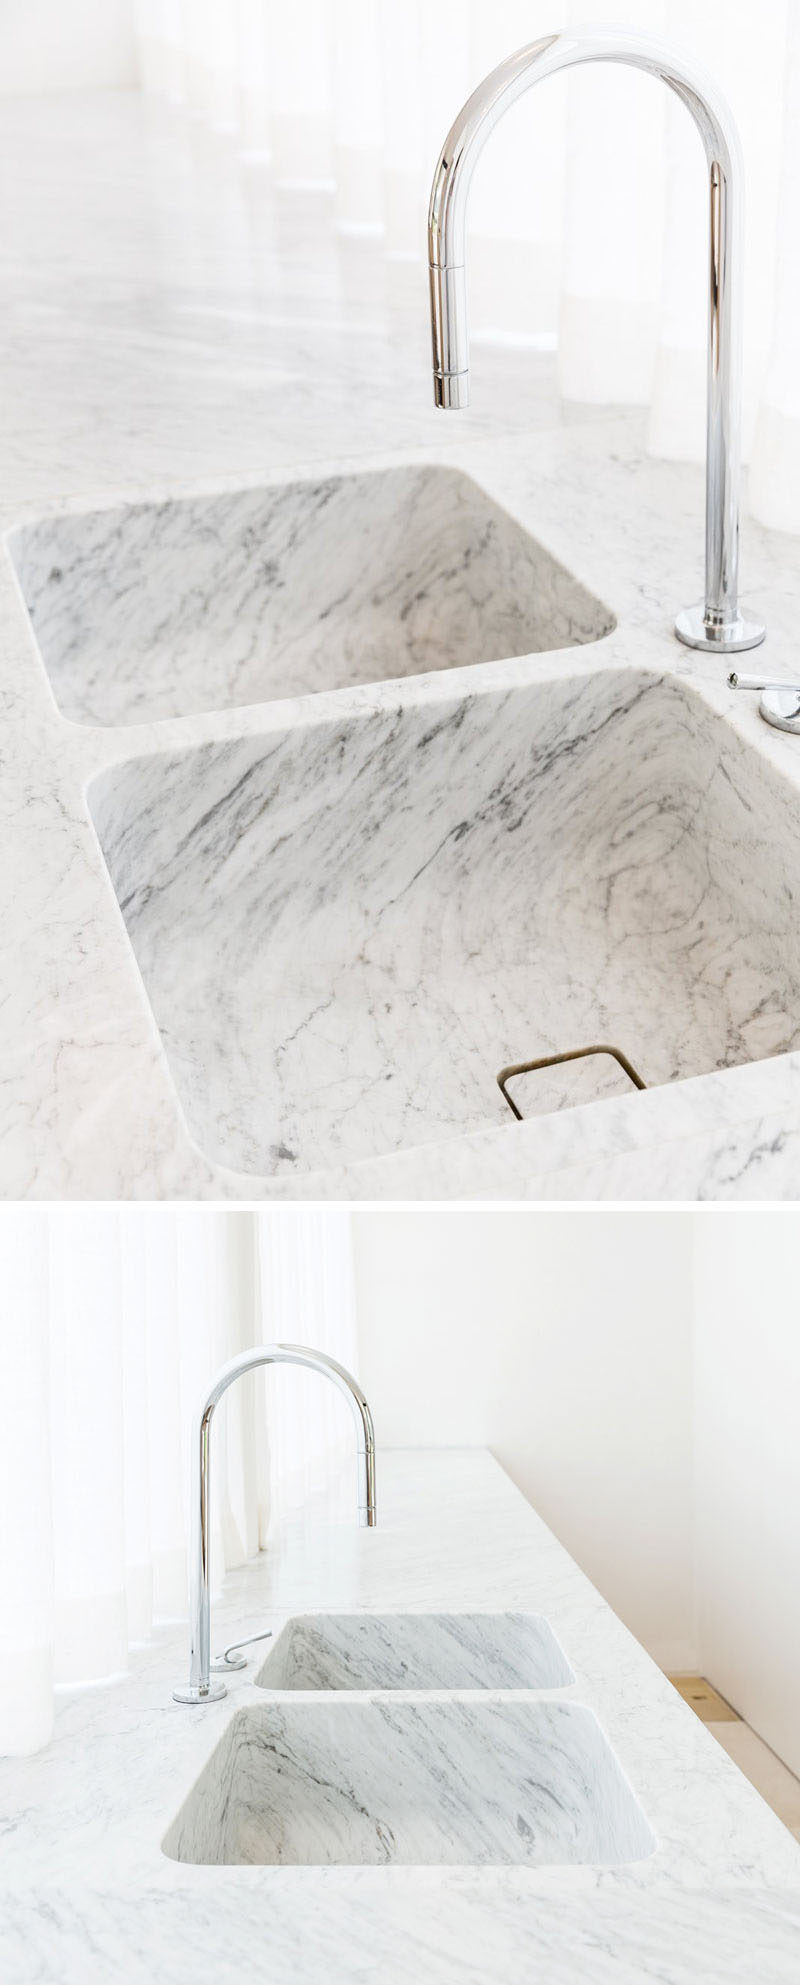 KITCHEN DESIGN IDEA - 7 Kitchen Sinks Integrated Into The Countertop // These two integrated sinks showcase the beauty of marble by allowing the striations to continue from the countertop down into the base of the sink.